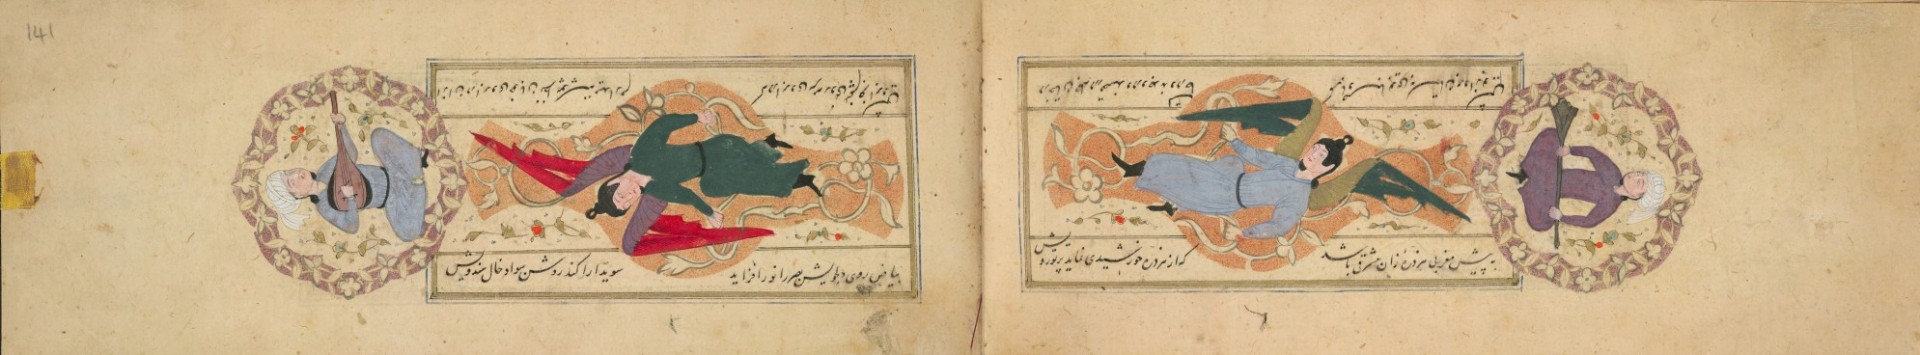 Double-page openings from an Anthology of Ghazals (safina). Mid-15thcentury [BL].